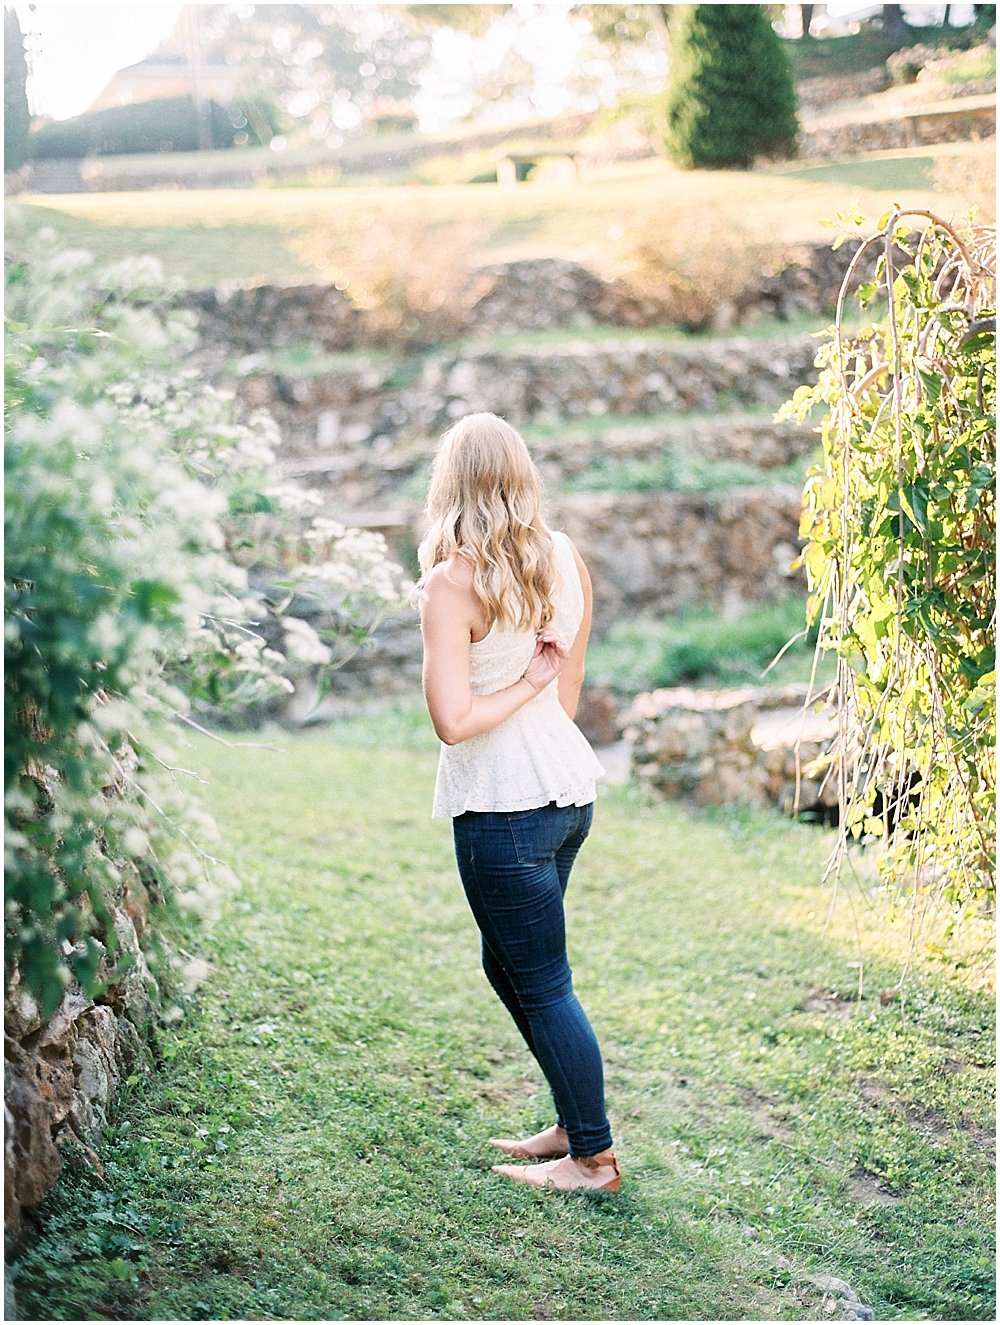 Lace top and jeans for a casual look - Engagement Photo Looks